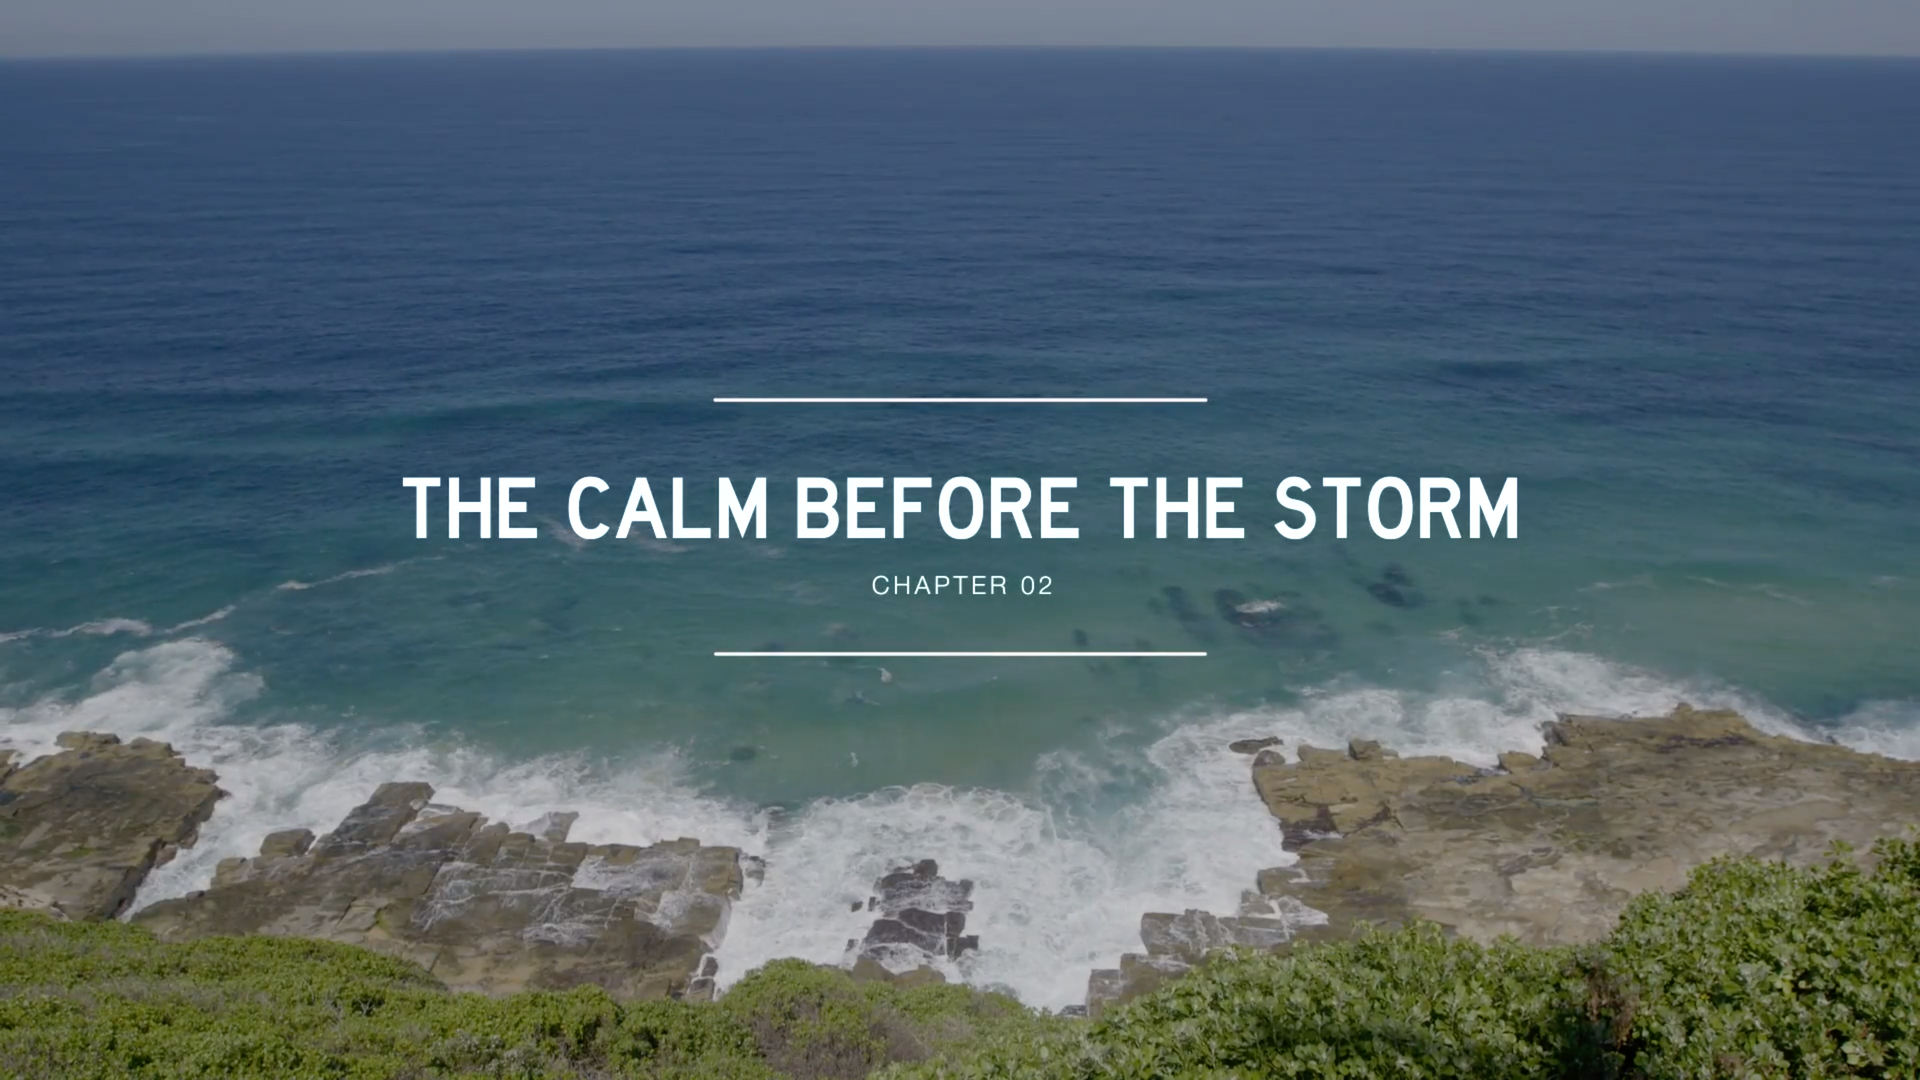 CHAPTER 02: CALM BEFORE THE STORM